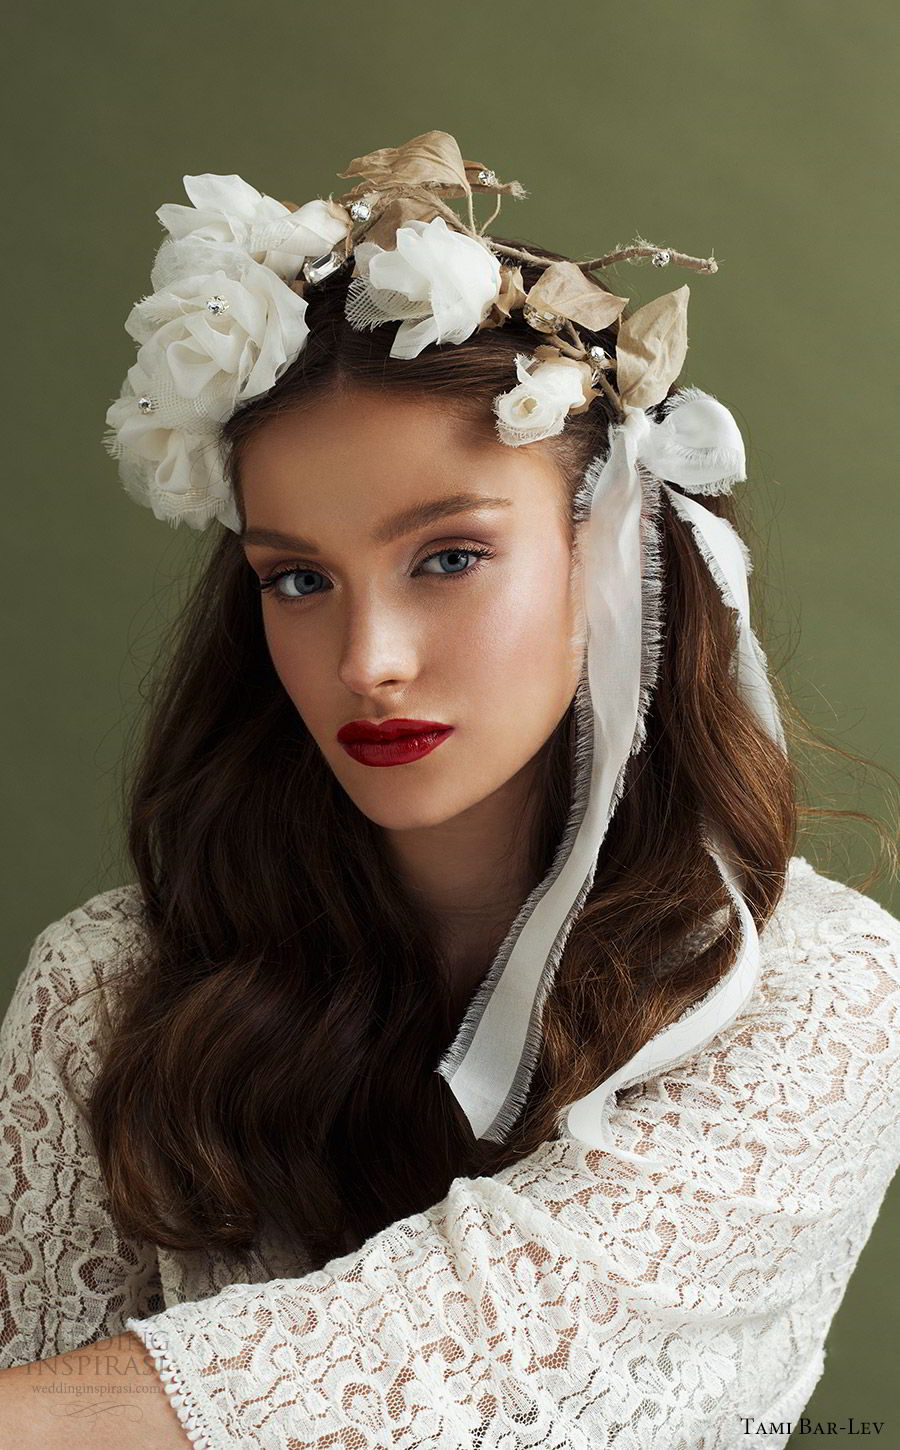 tami bar lev headpiece 2019 bridal hair accessories big dreams rose crown